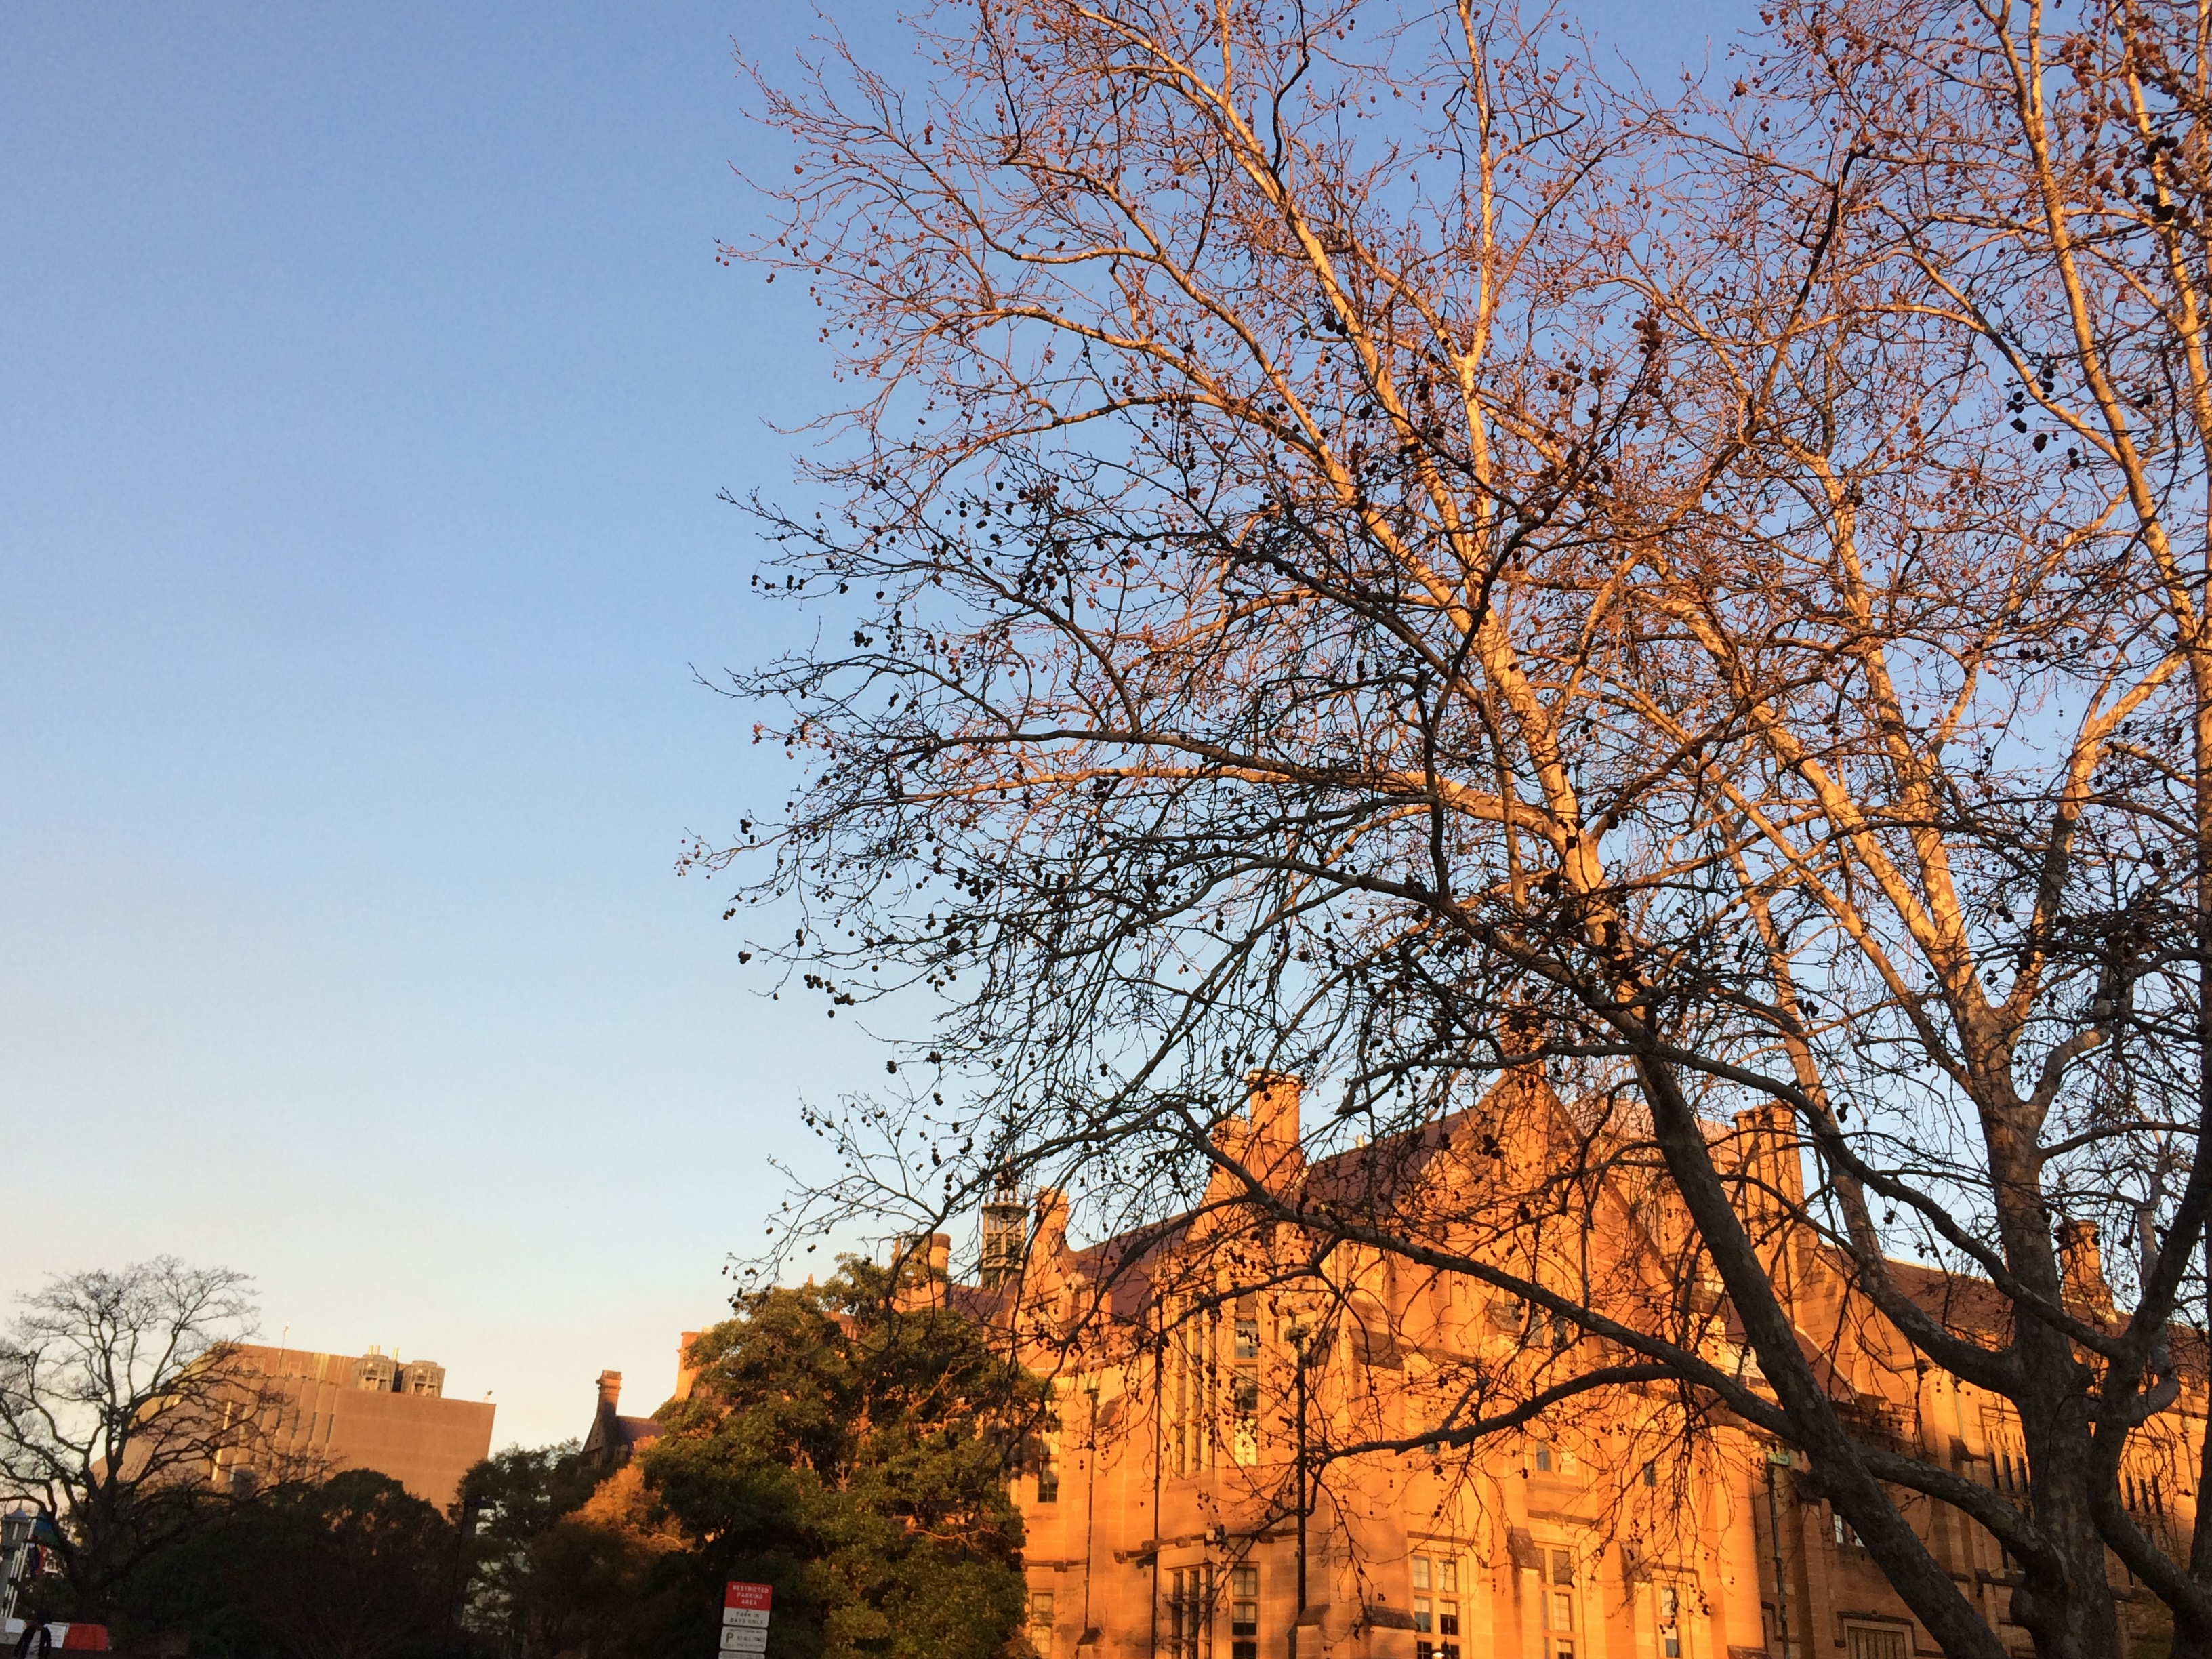 The afternoon of Sydney Uni